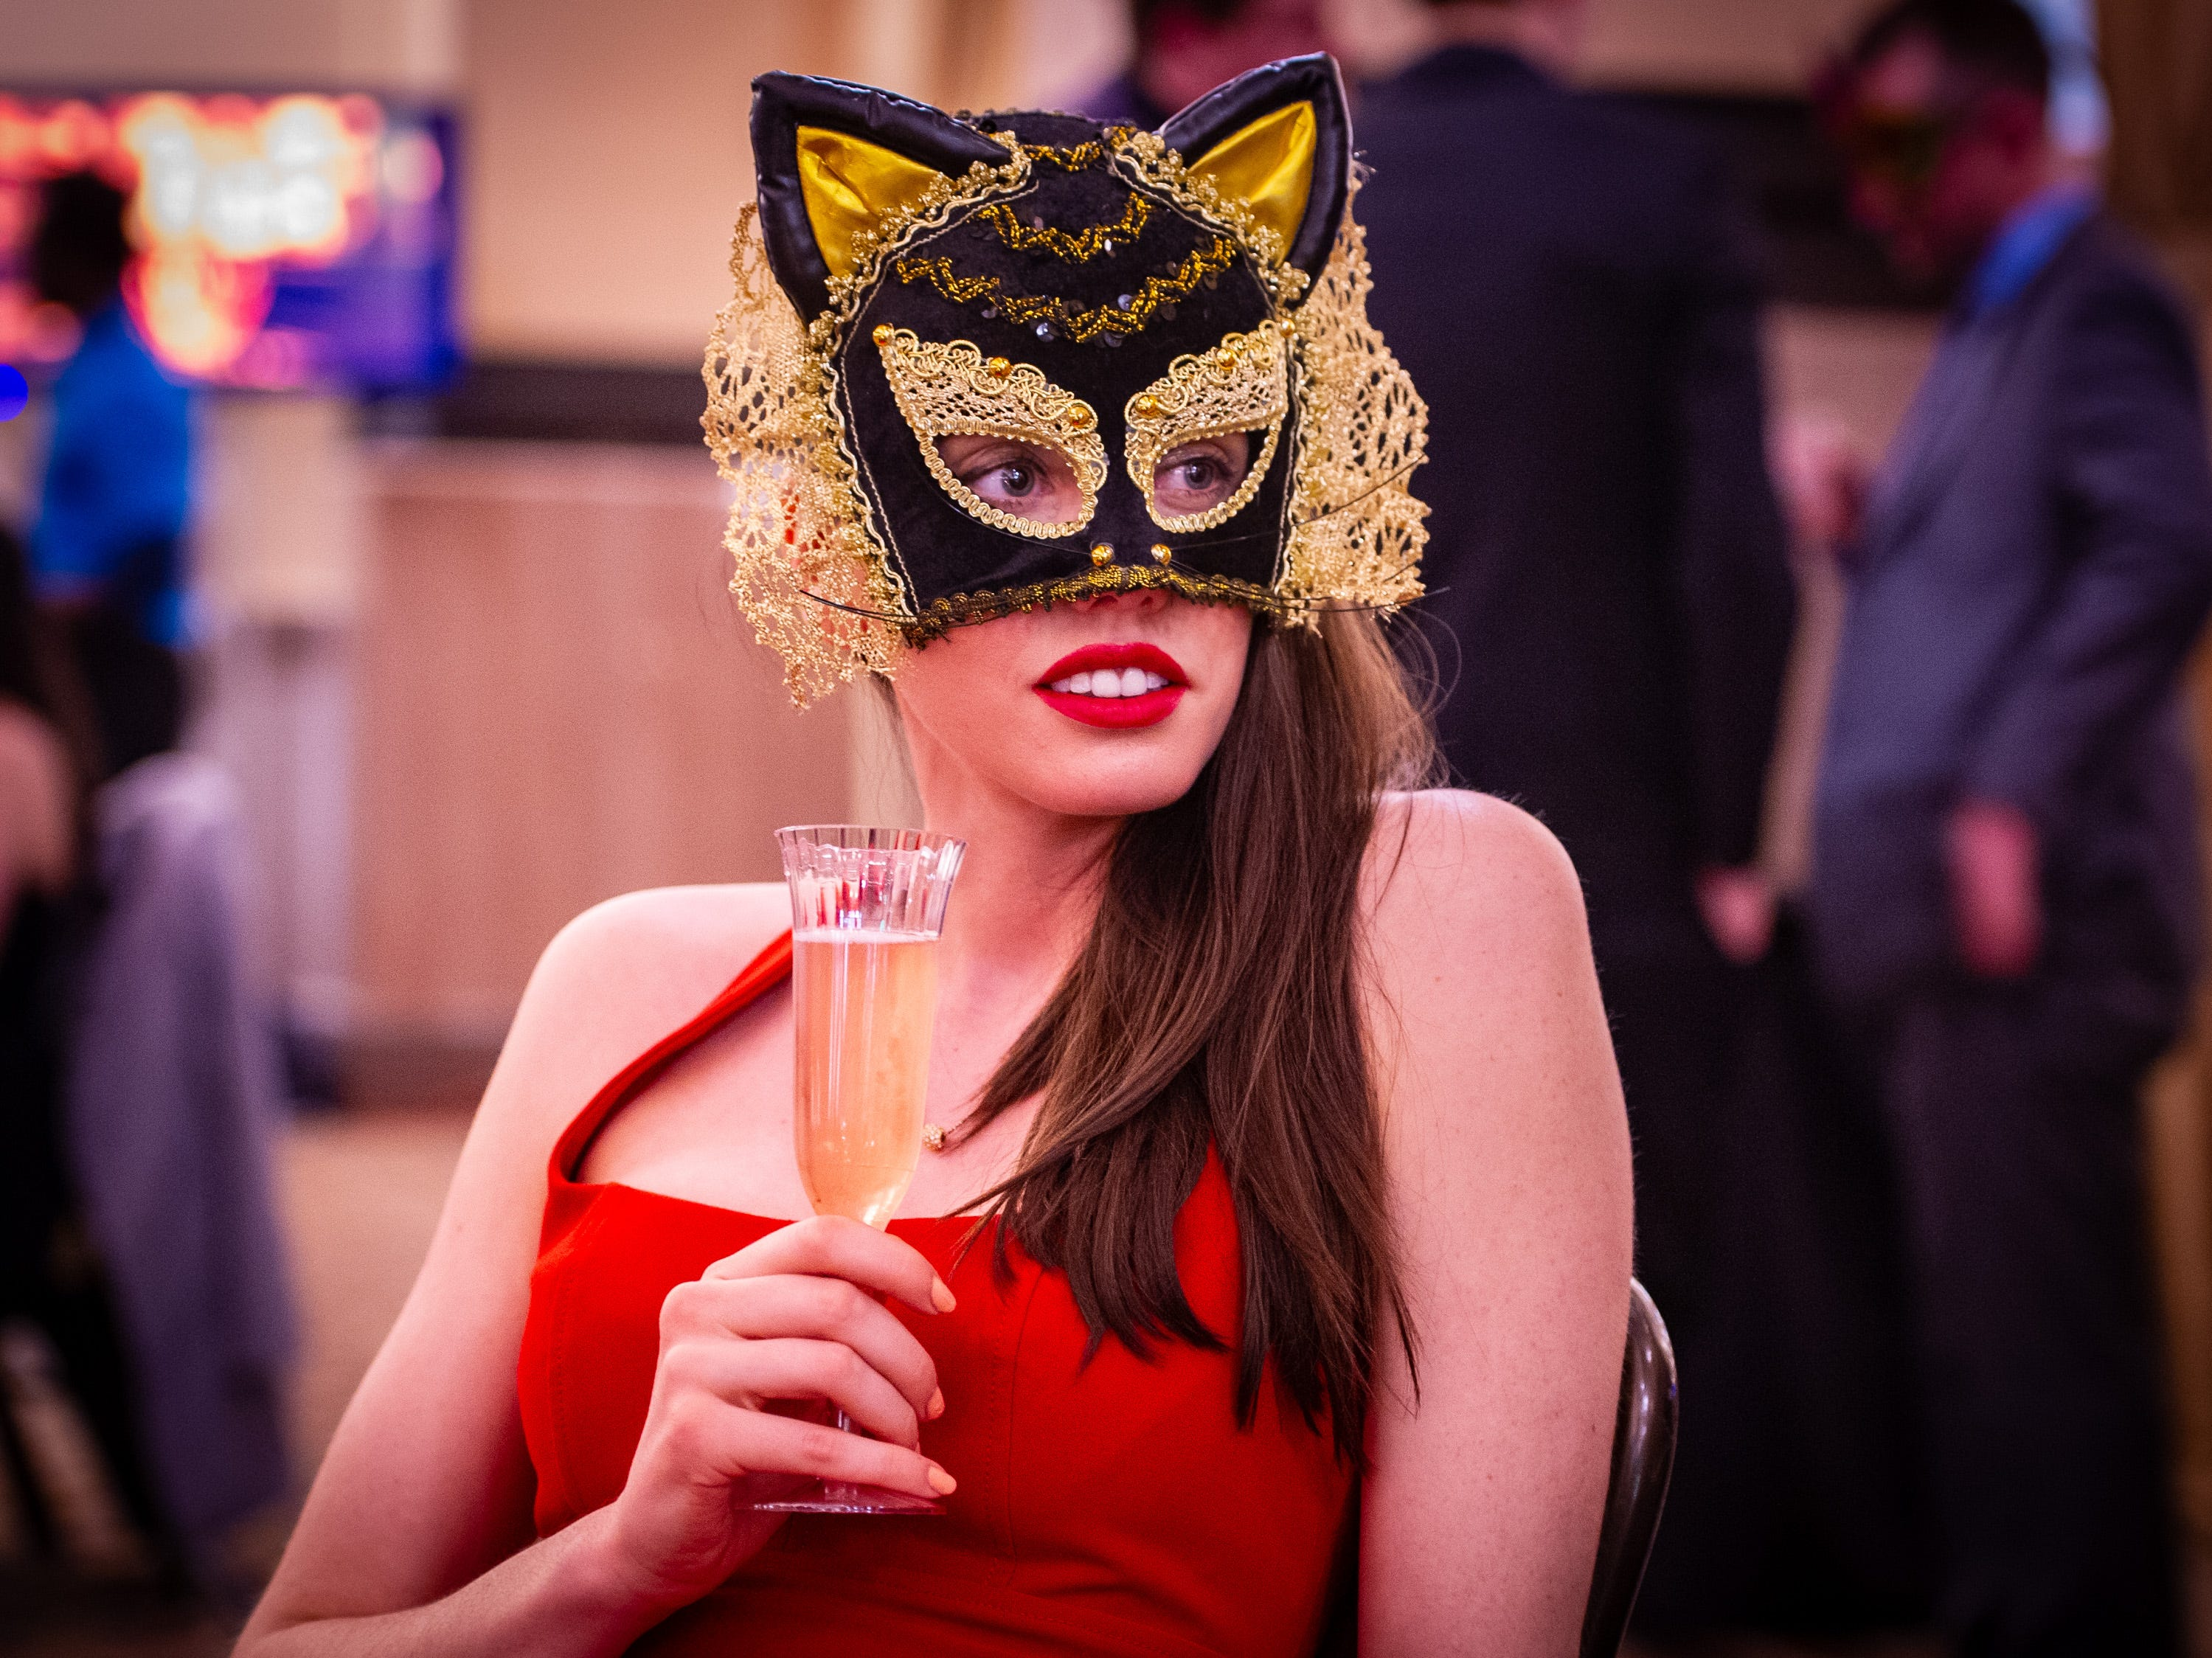 Molly Meiners, of Indianapolis, soaks up the atmosphere during the event Monday, Dec. 31, 2018, at The 12th Annual Indy Masquerade held at Union Station in Indianapolis.